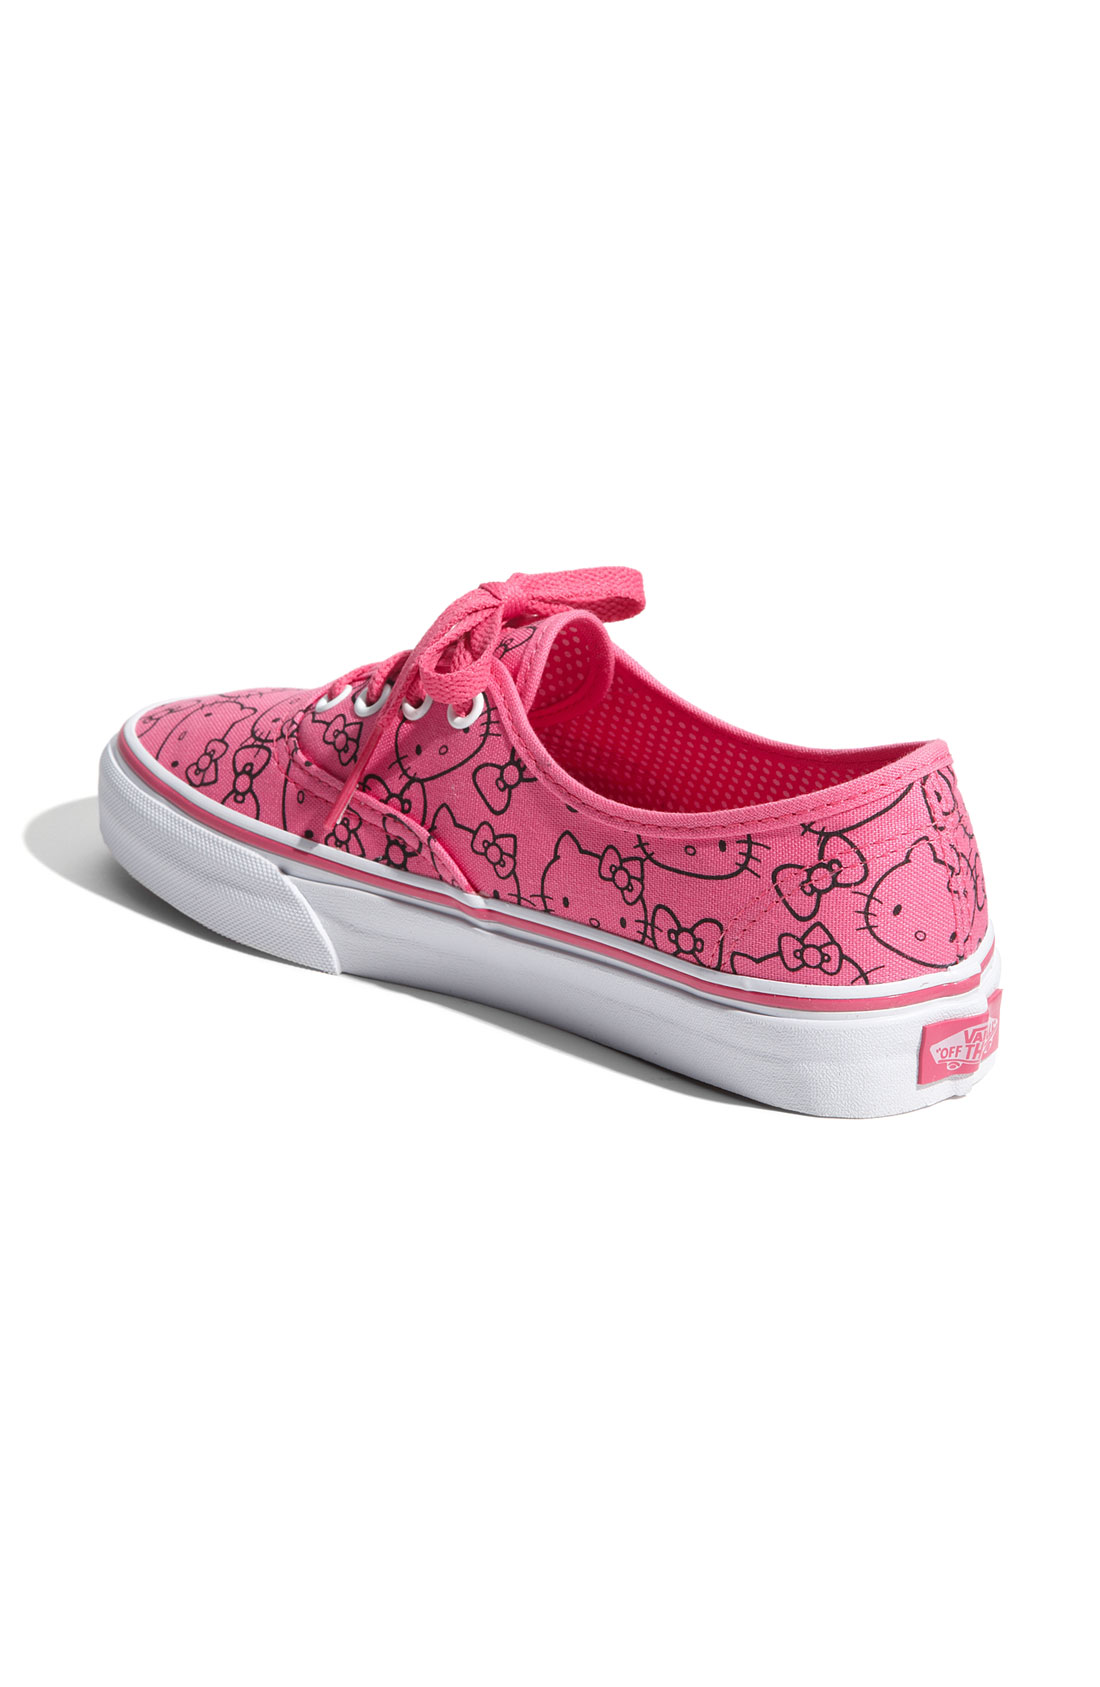 Lyst - Vans Hello Kitty® - Authentic Sneaker (women) (limited ... 6426117a1